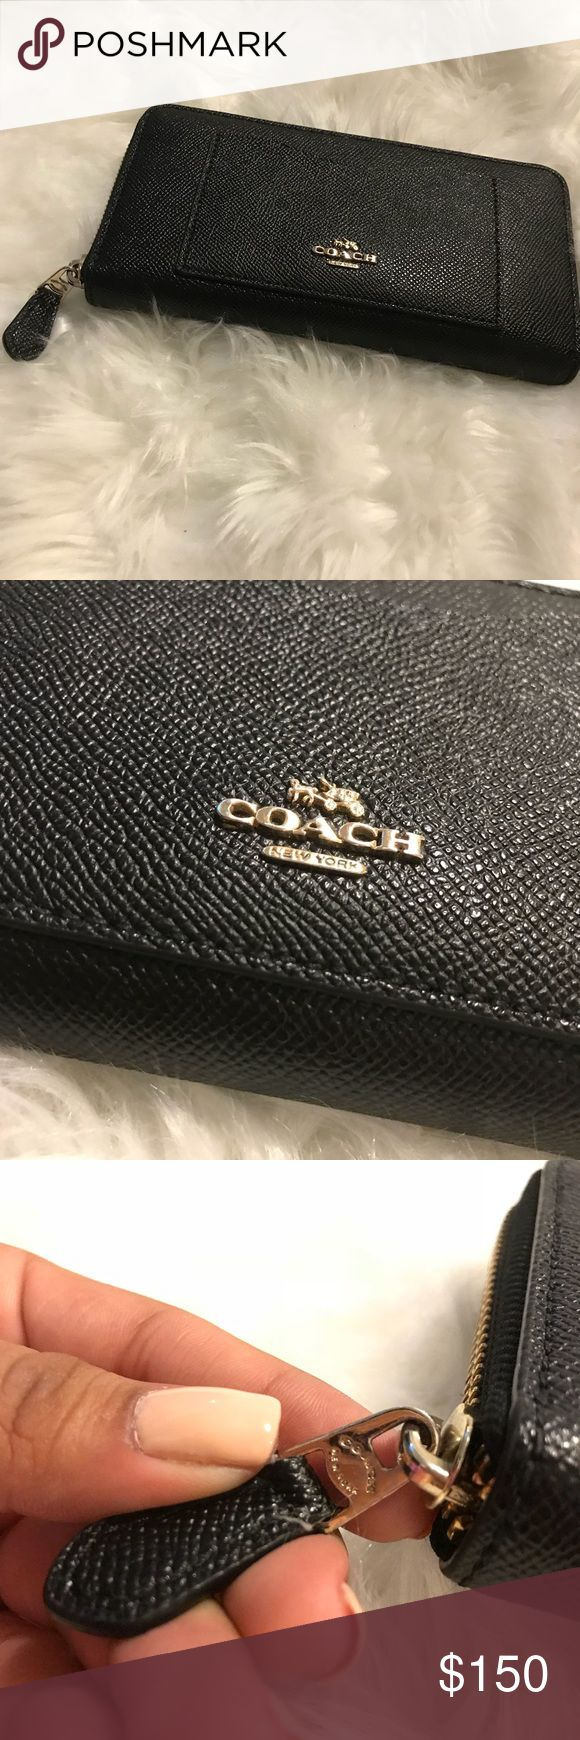 Coach Wallet Leather Coach Wallet. Gently Used. Coach Bags Wallets